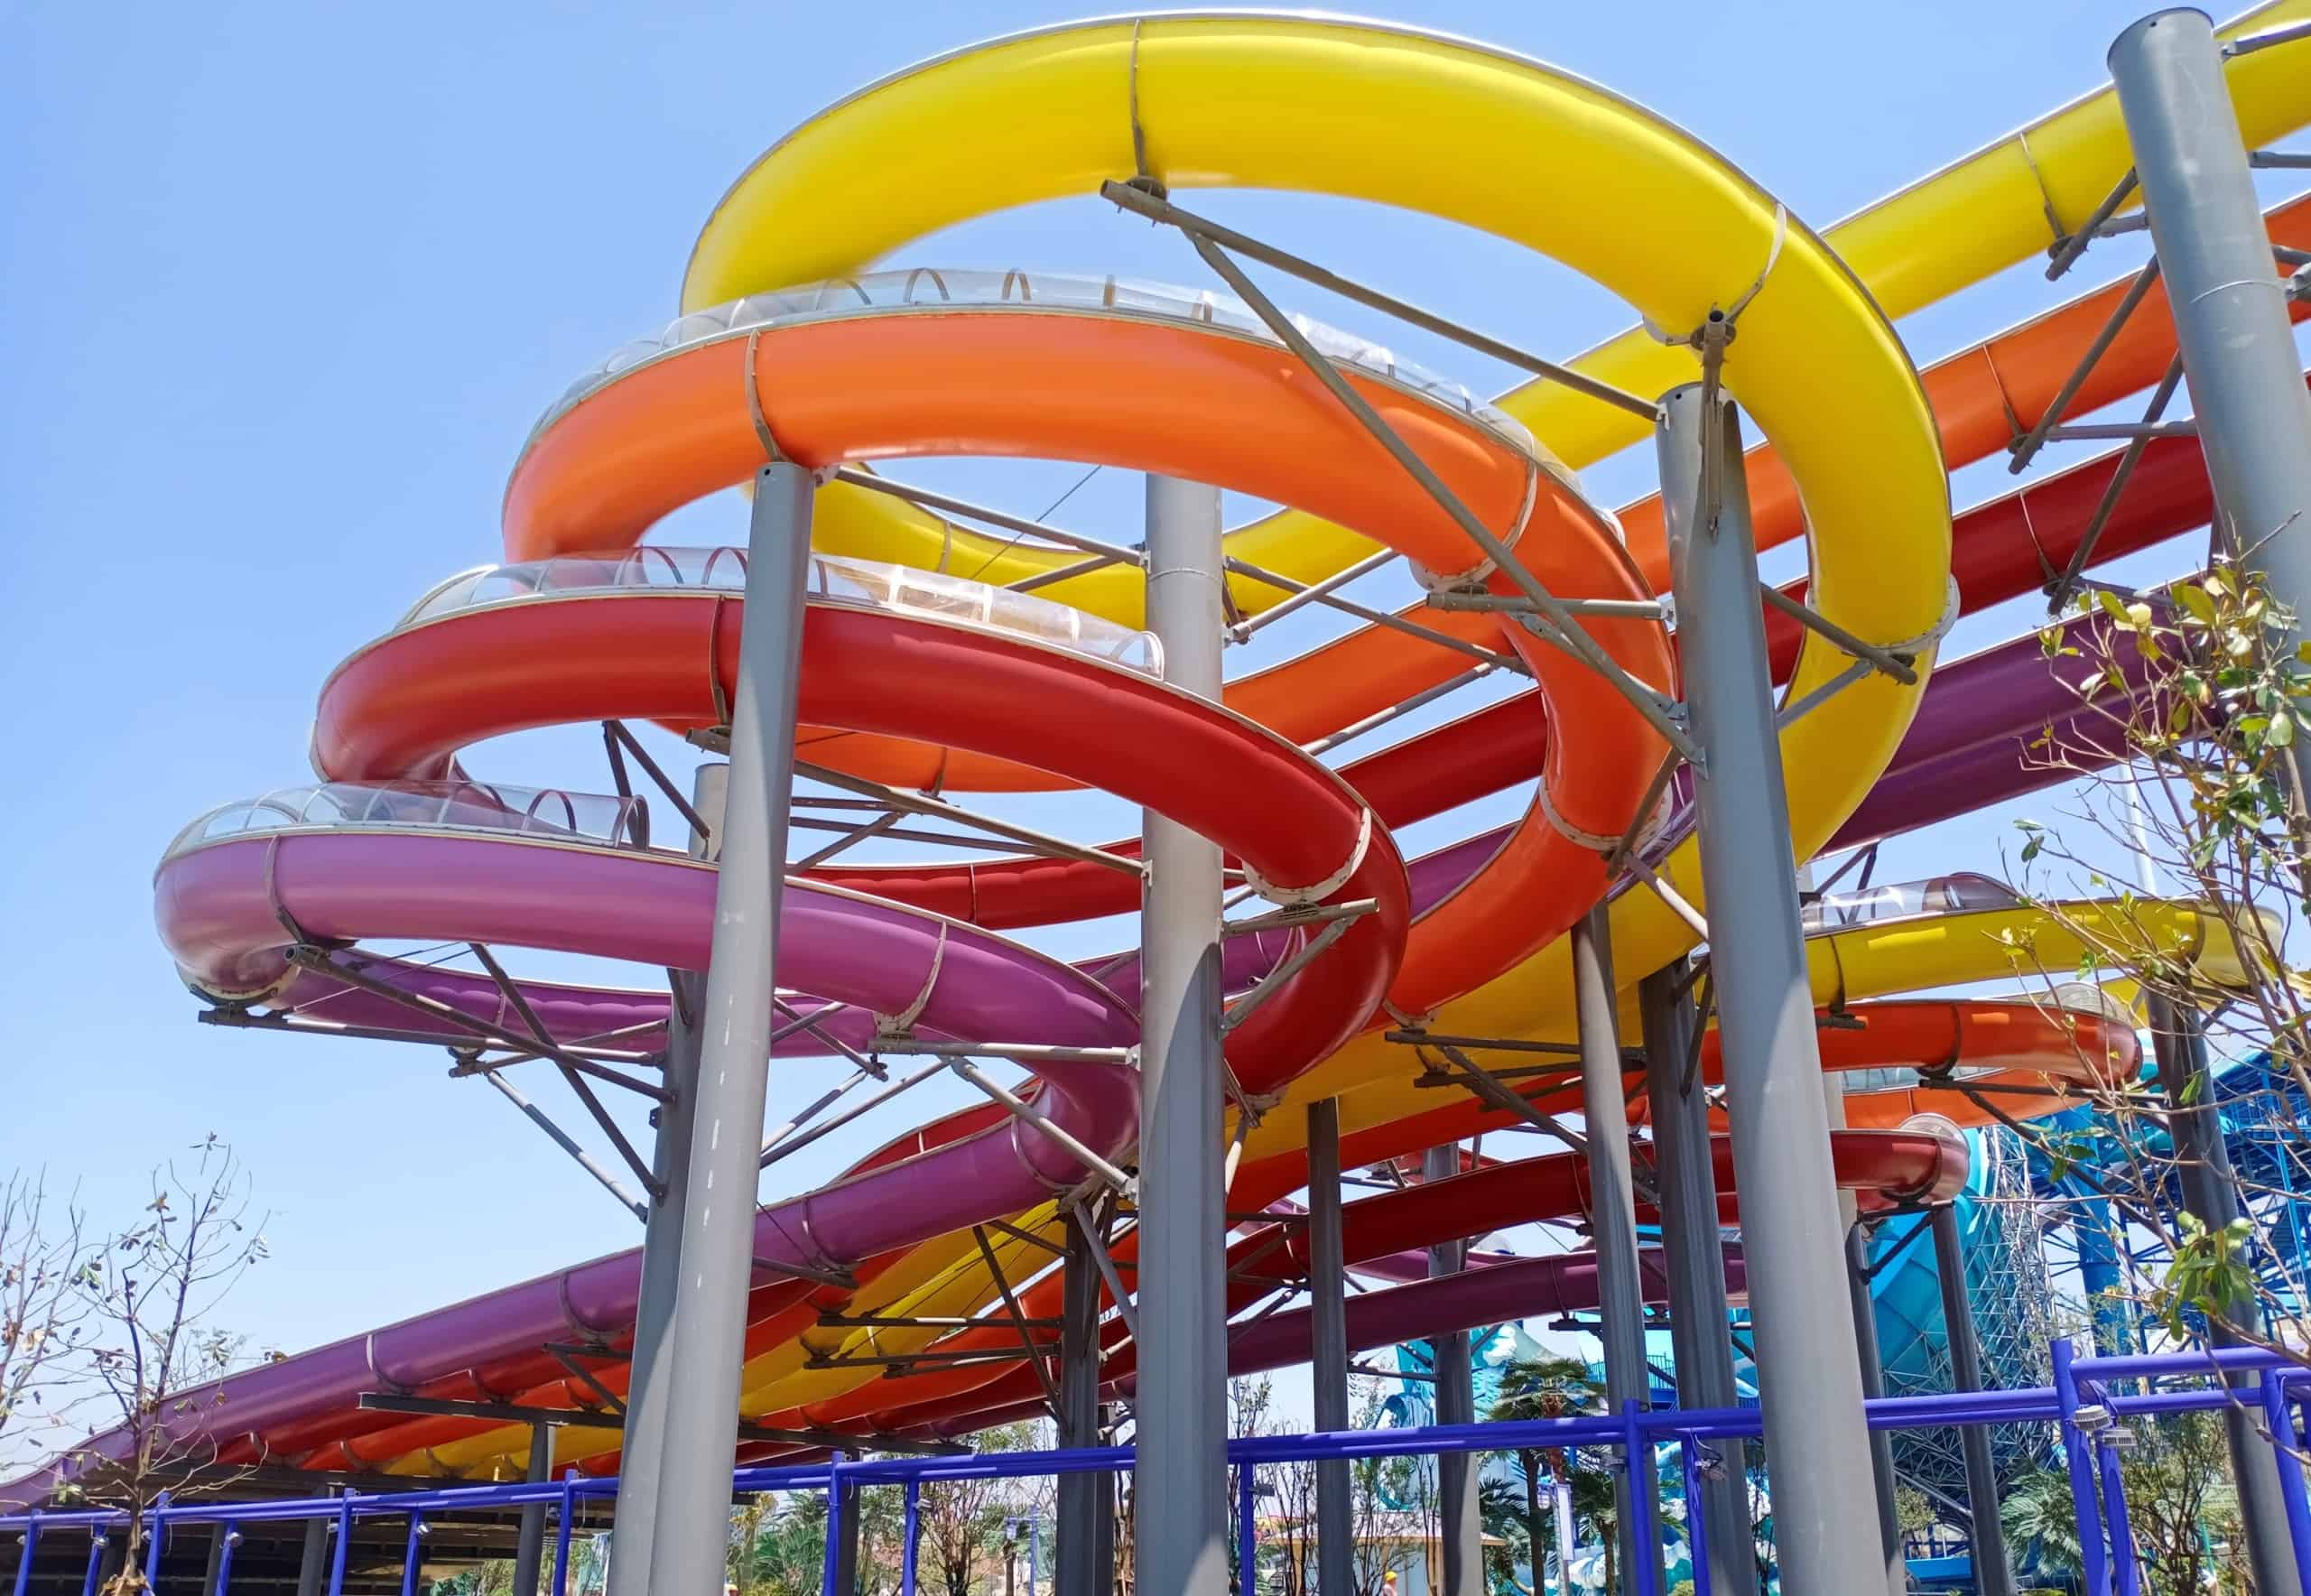 new 8 lane racer water ride from wiegand.waterrides